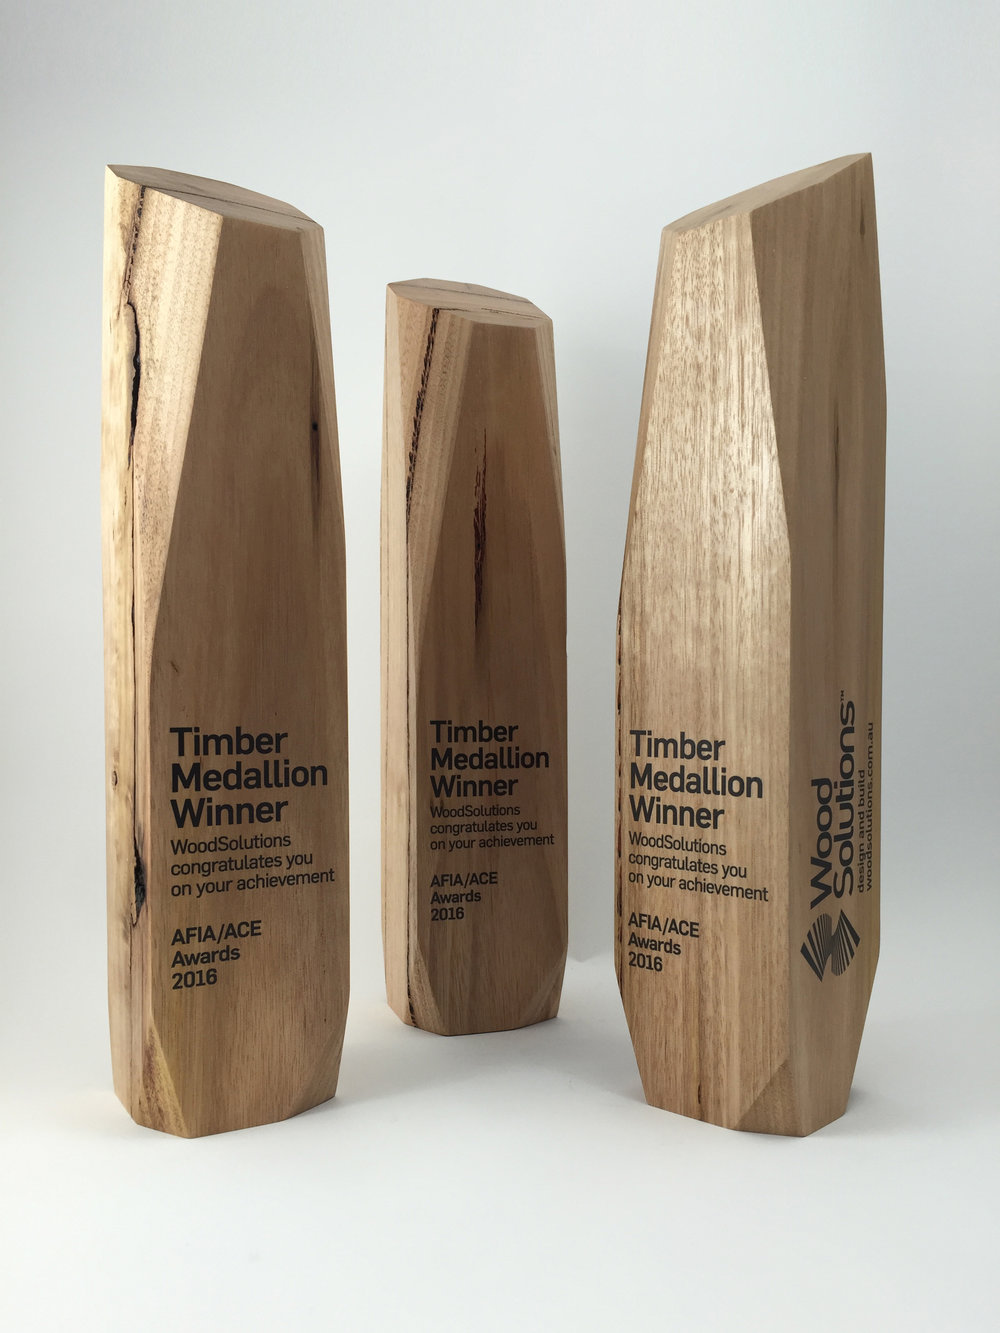 Wood-solutions-timber-eco-trophy-awards-01.jpg